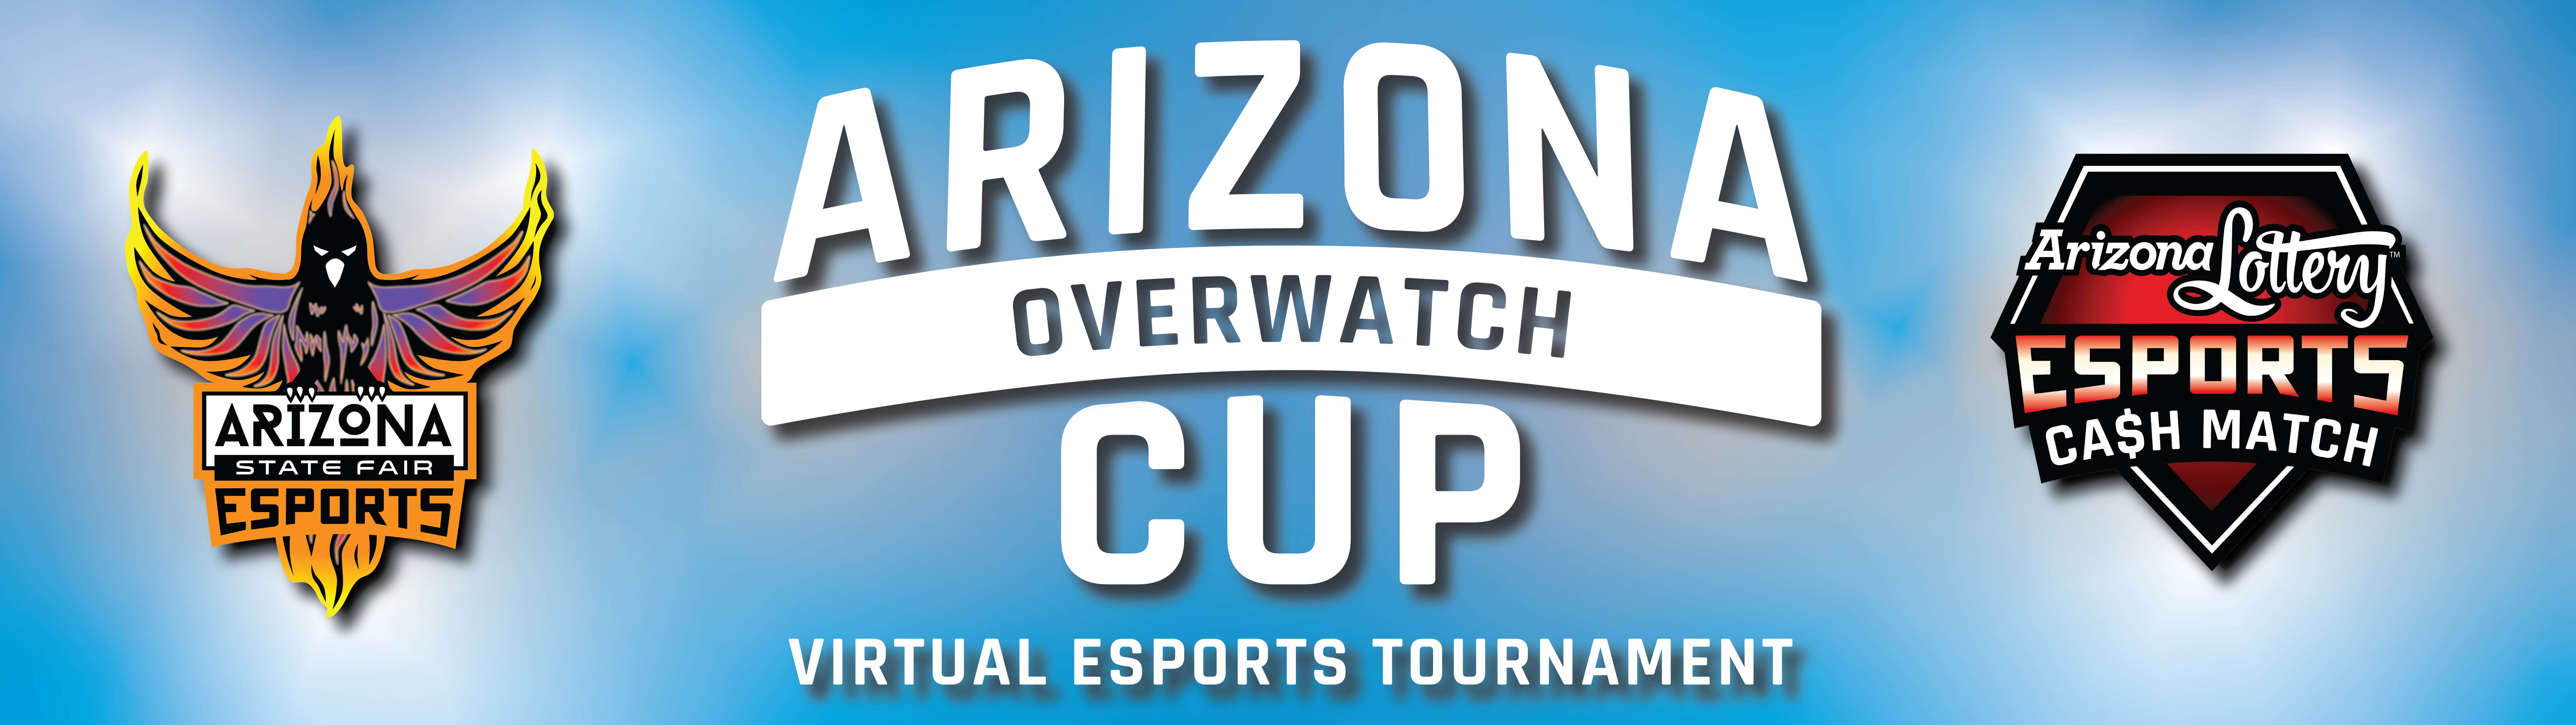 AZ Lottery Esports Overwatch Banners-01